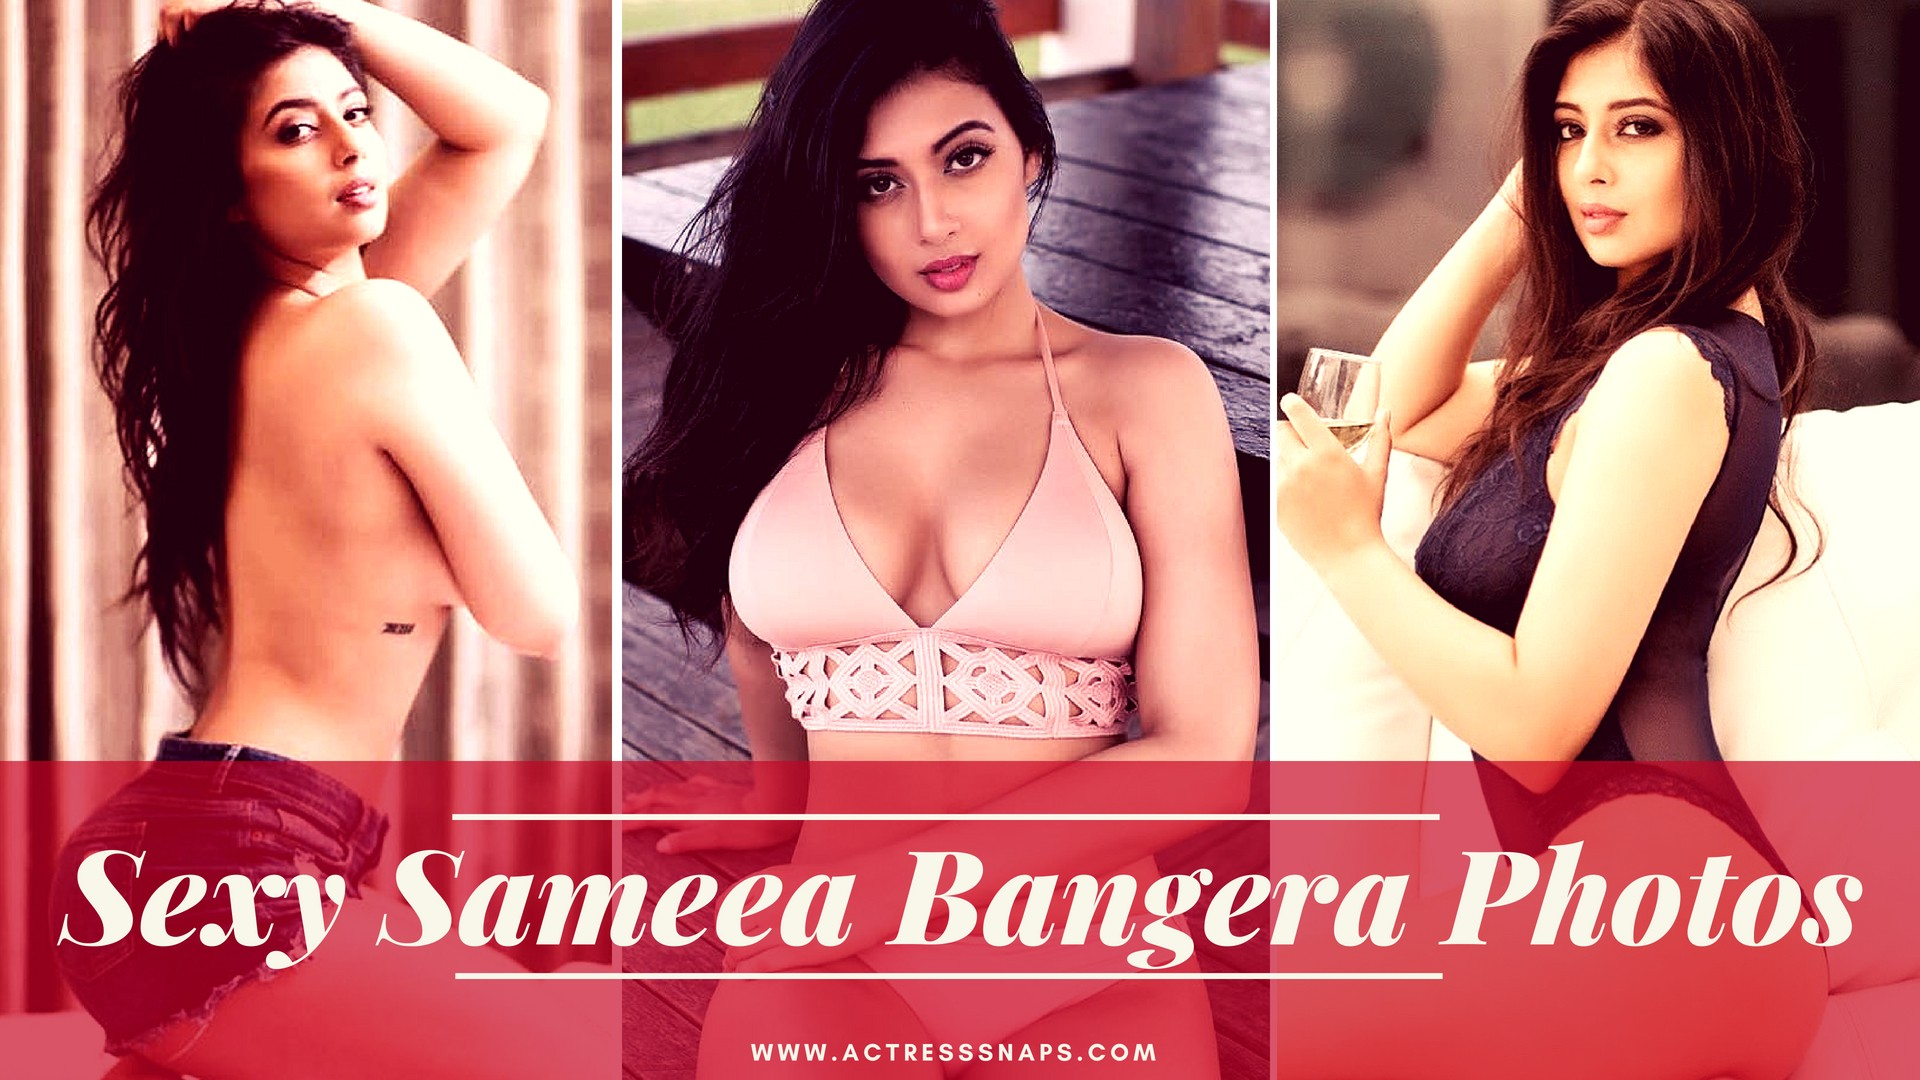 Sexy Sameea Bangera Pictures - Sexy Actress Pictures   Hot Actress Pictures - ActressSnaps.com